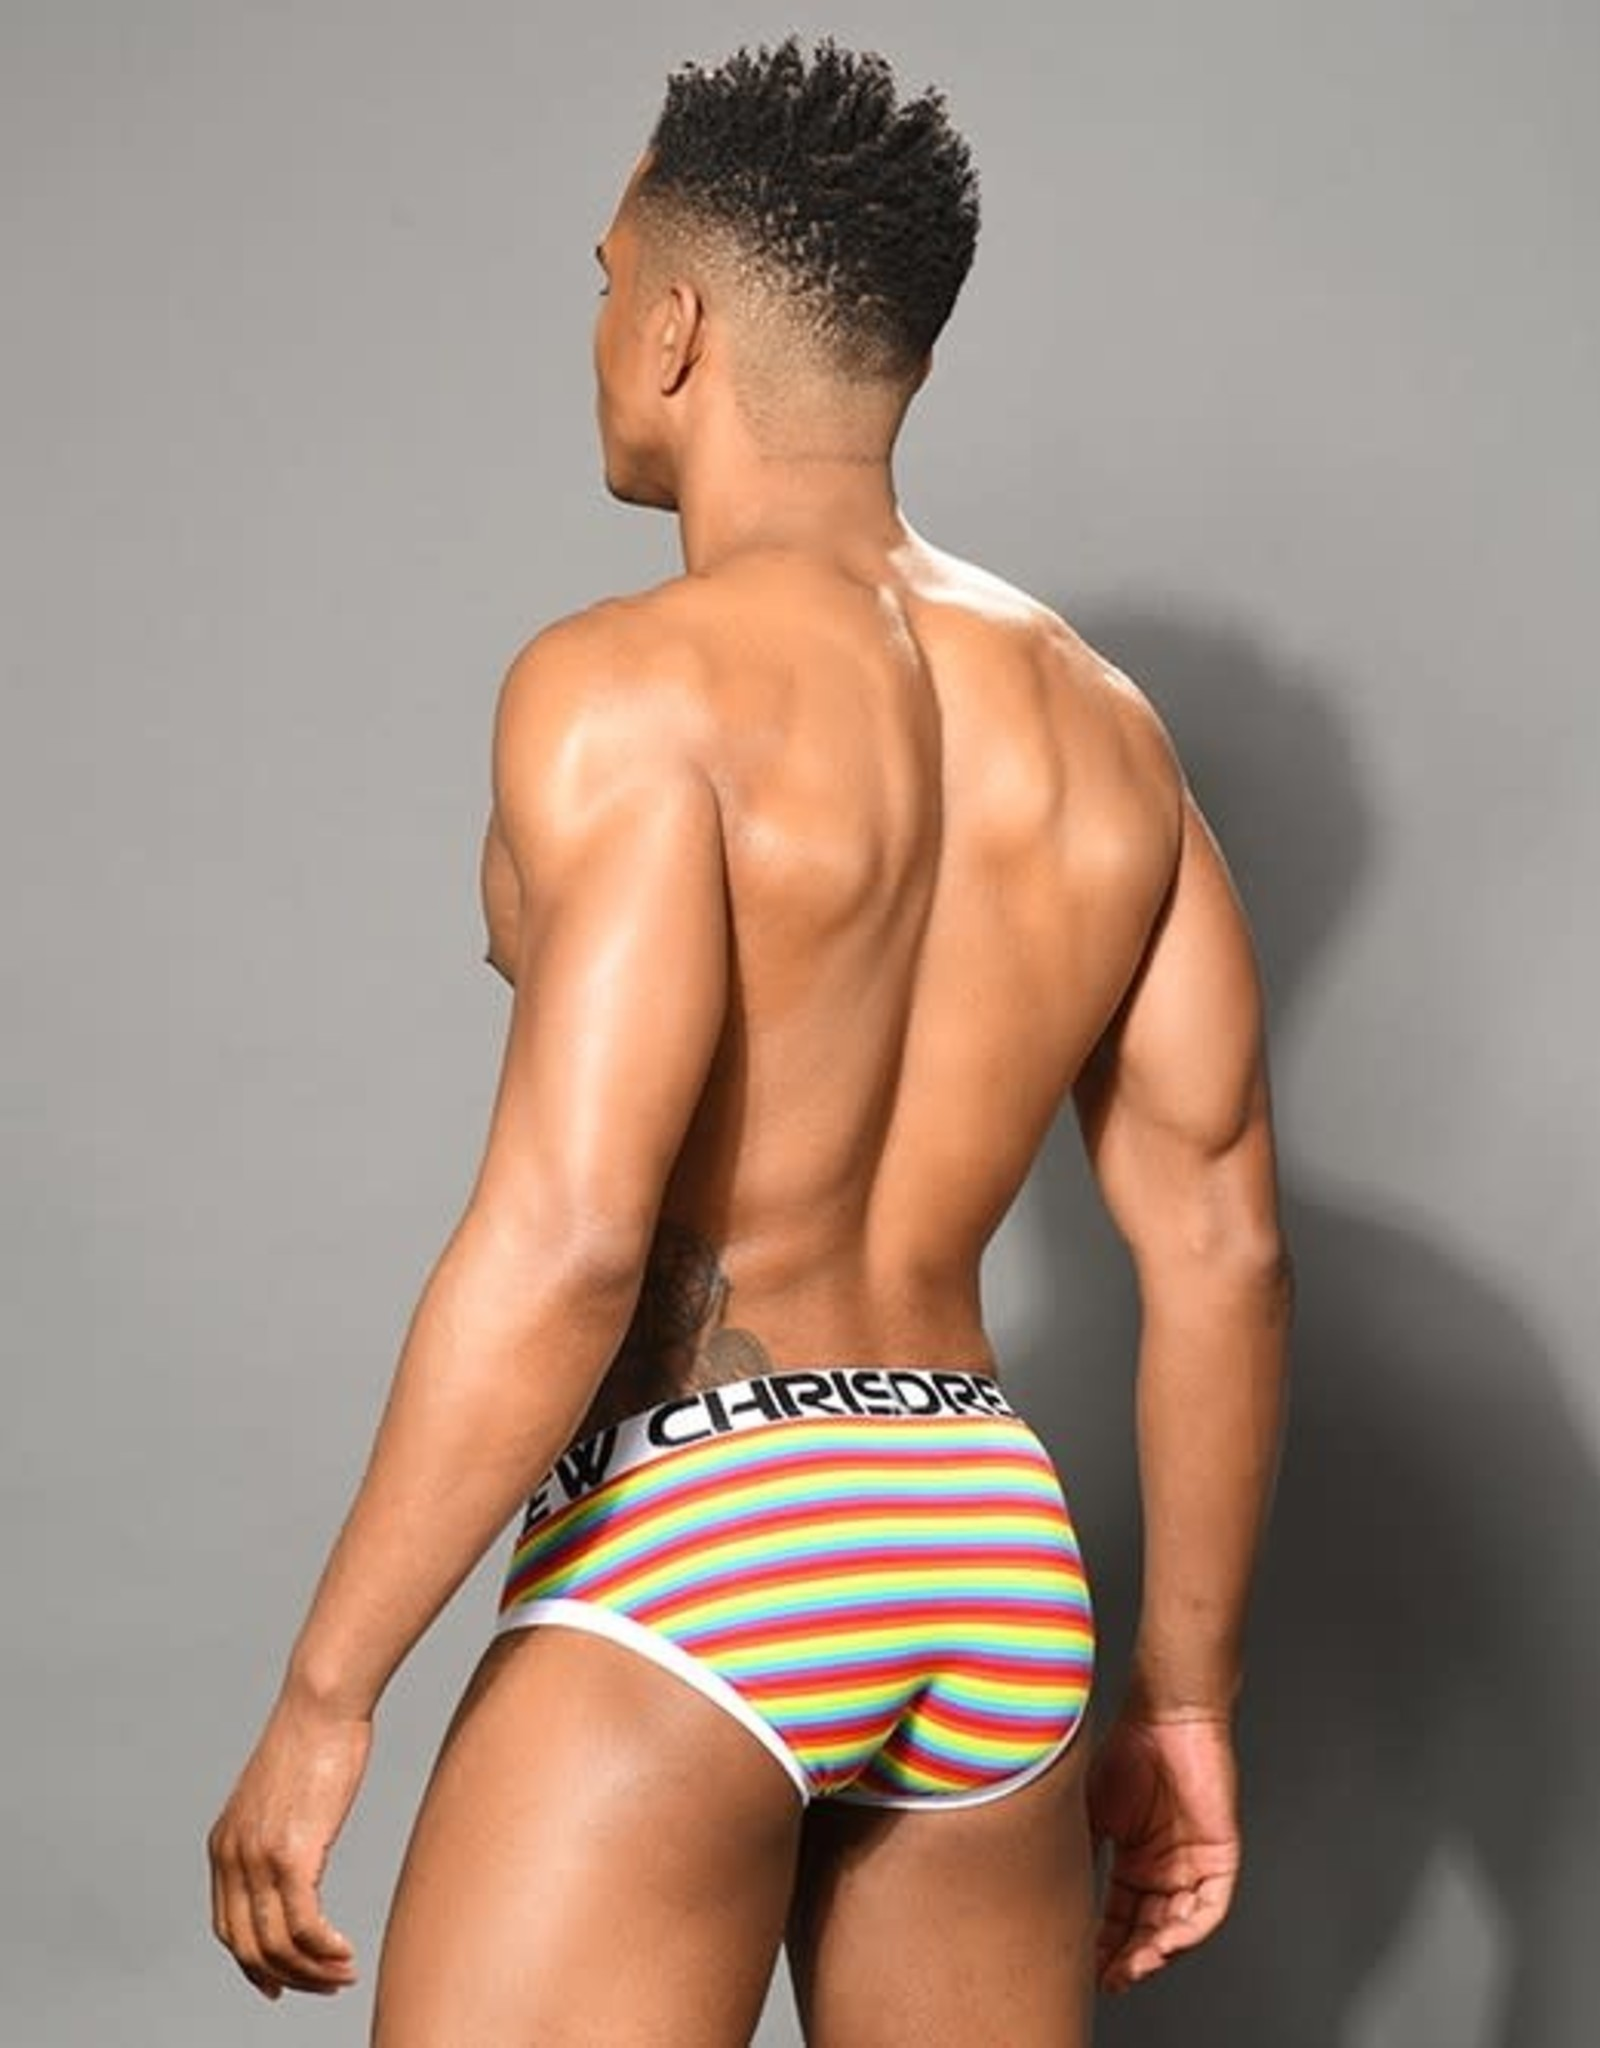 Andrew Christian Pride Stripe Love Brief (in store purchase only)